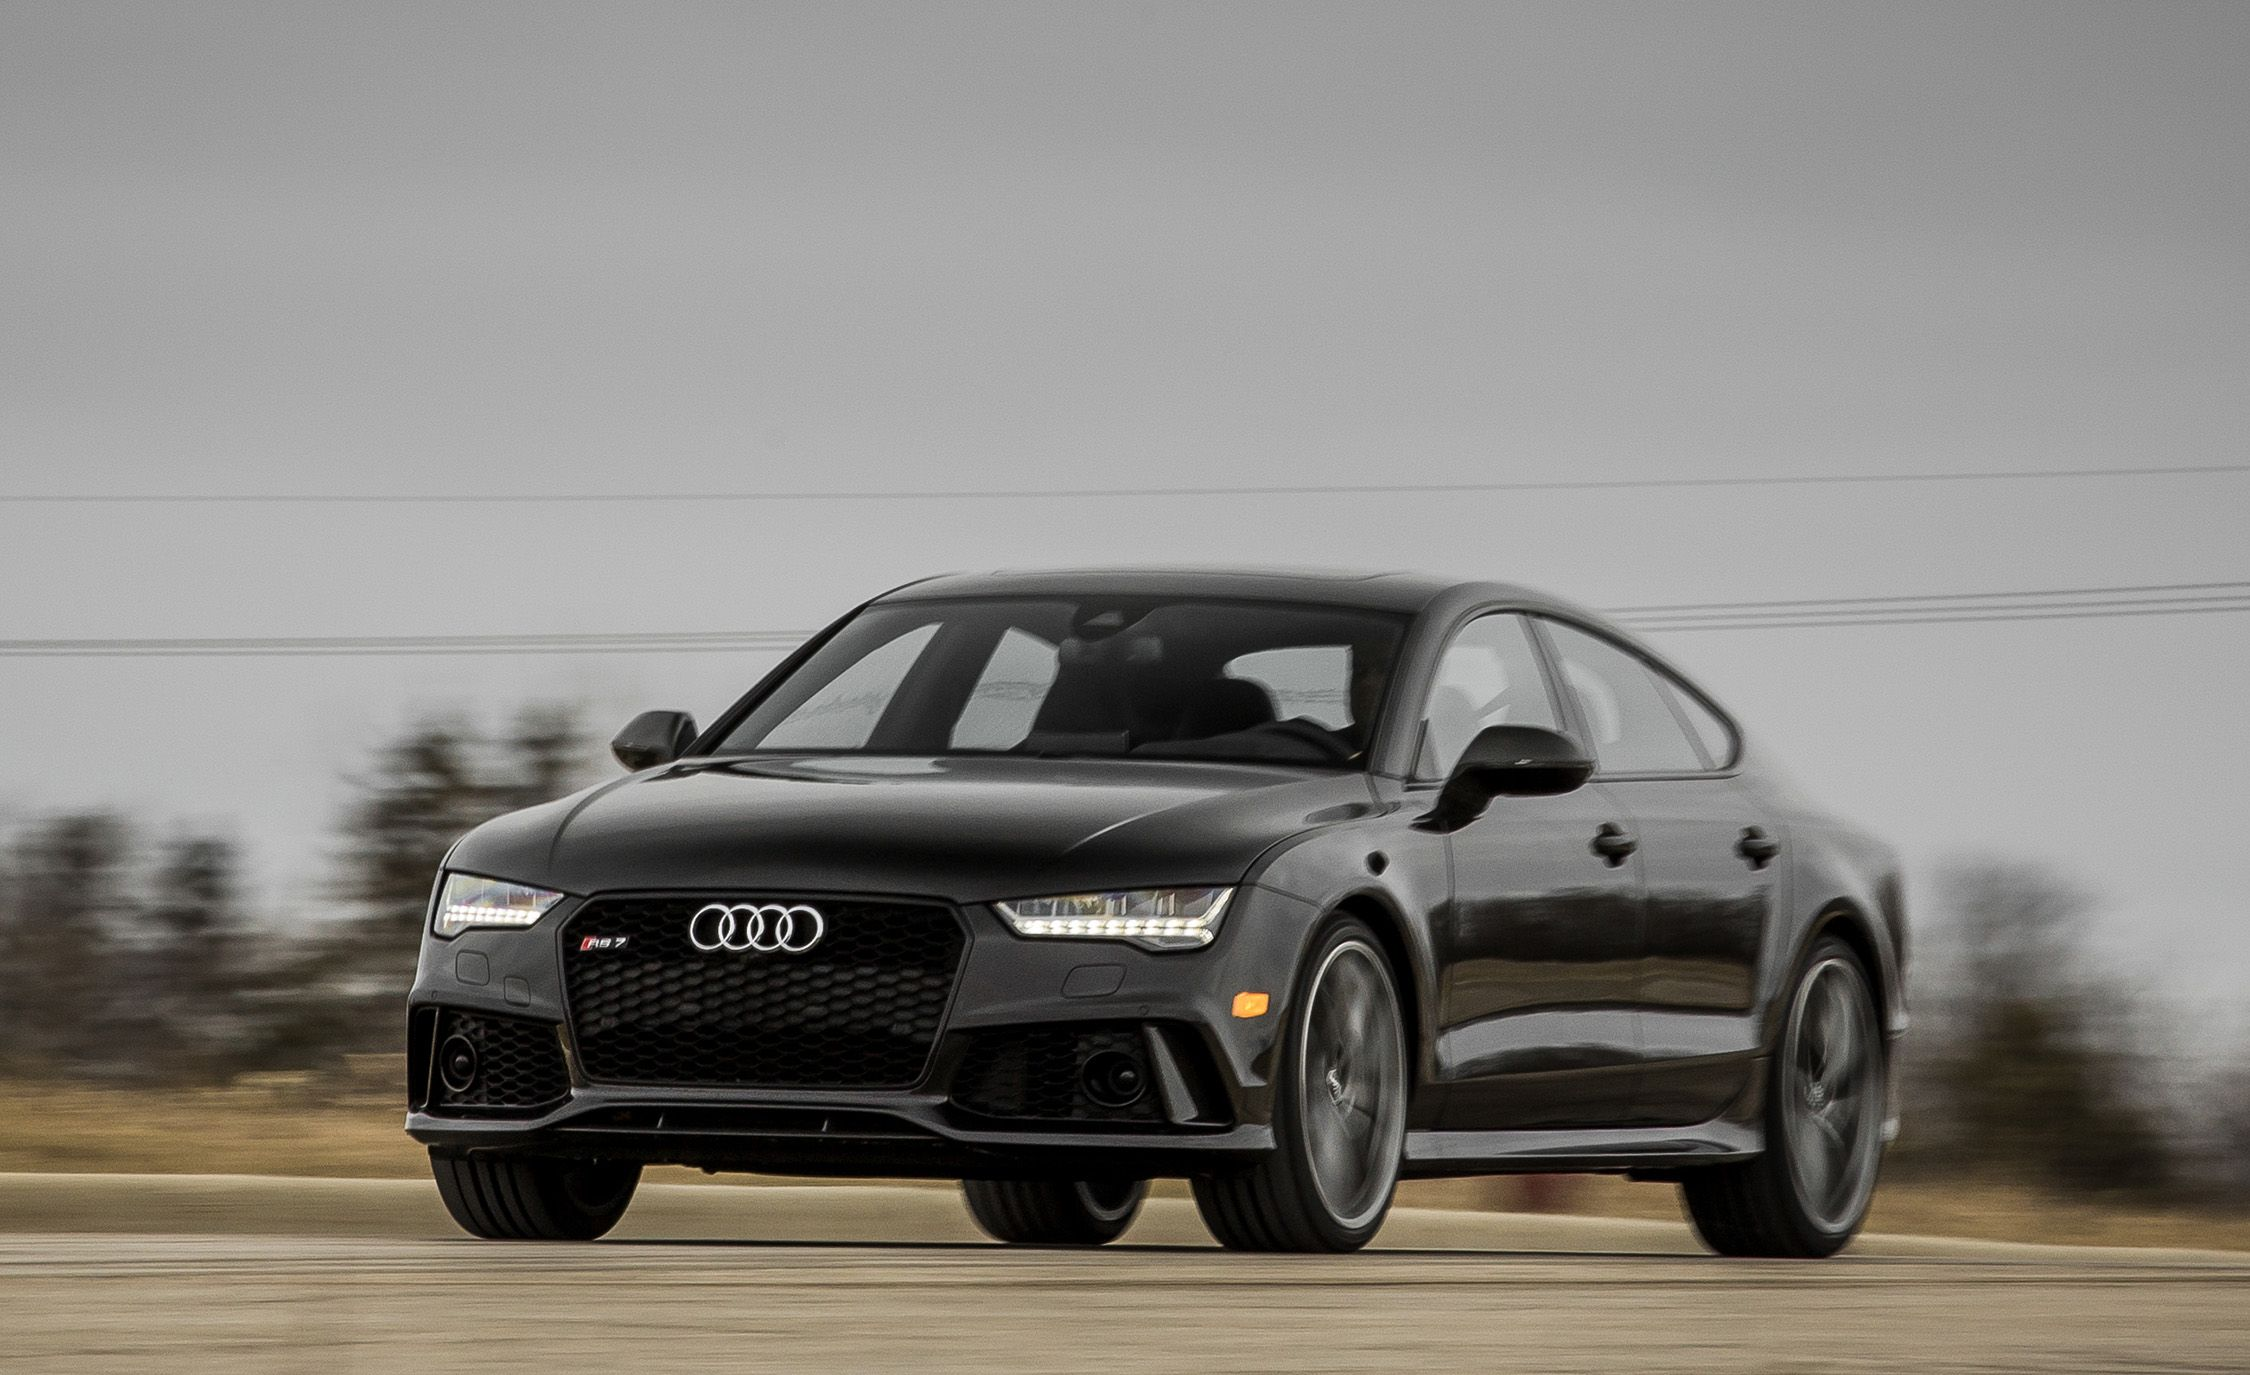 2017 Audi RS7 Performance